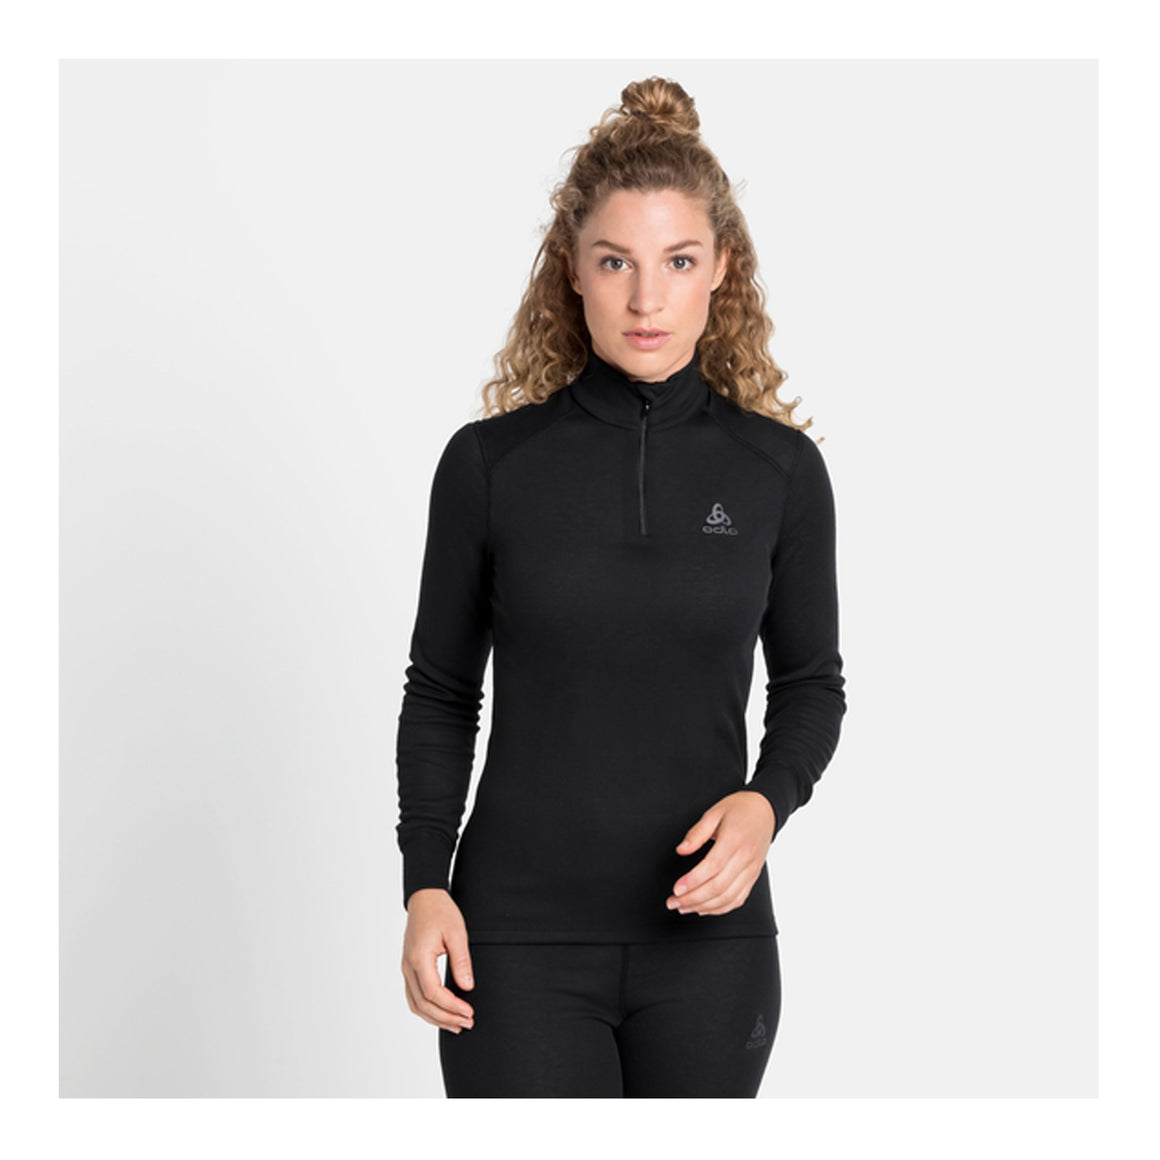 Active Warm Eco Turtle Neck for Women in Black